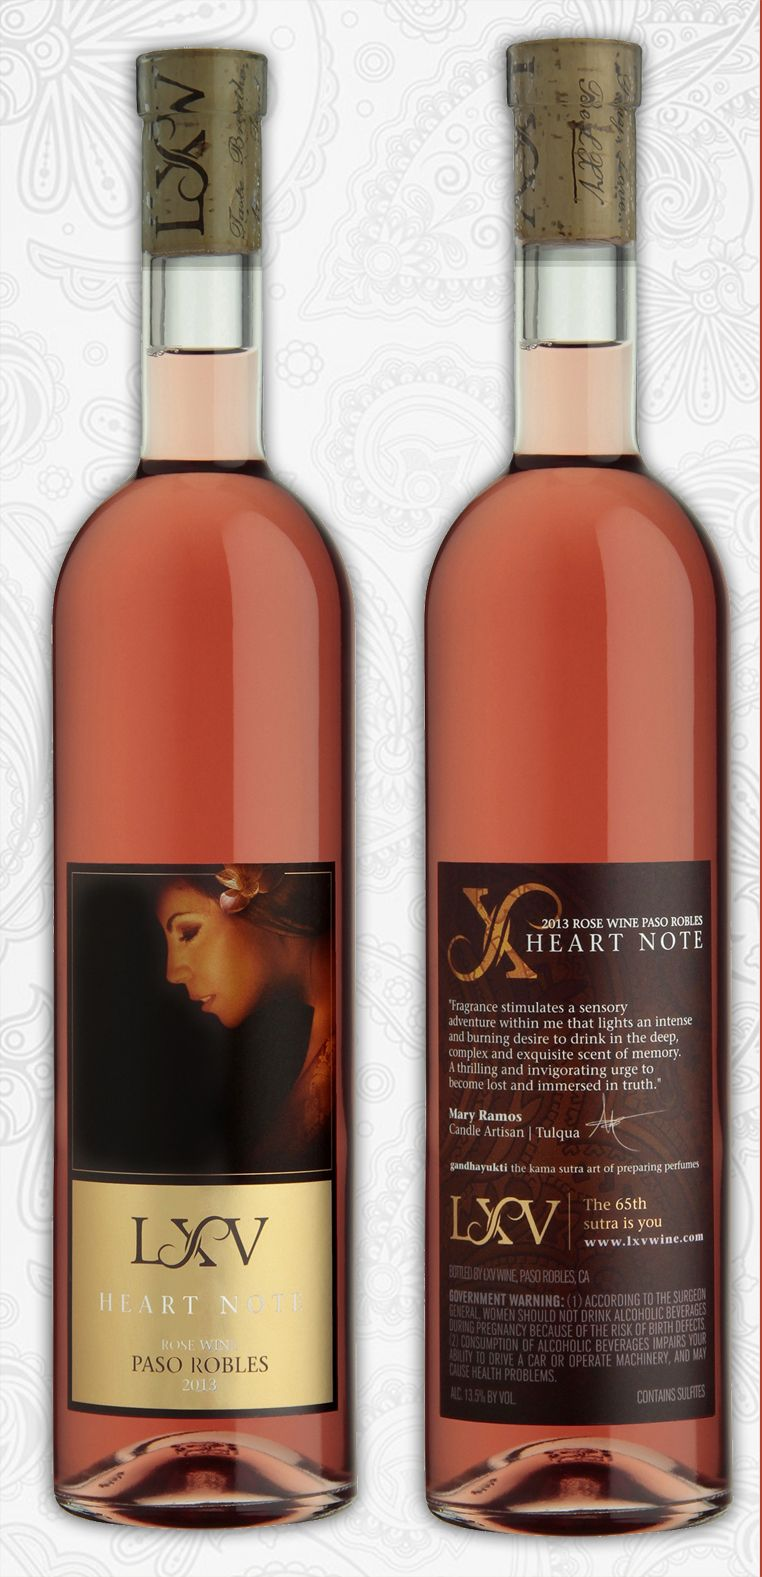 Lxv 2013 Heart Note Rose At Once Juicy And Creamy In The Mouth The Flavors Suggest Kumquats And Young Strawberrie Unique Wines Rose Wine Bottle Wine Bottle